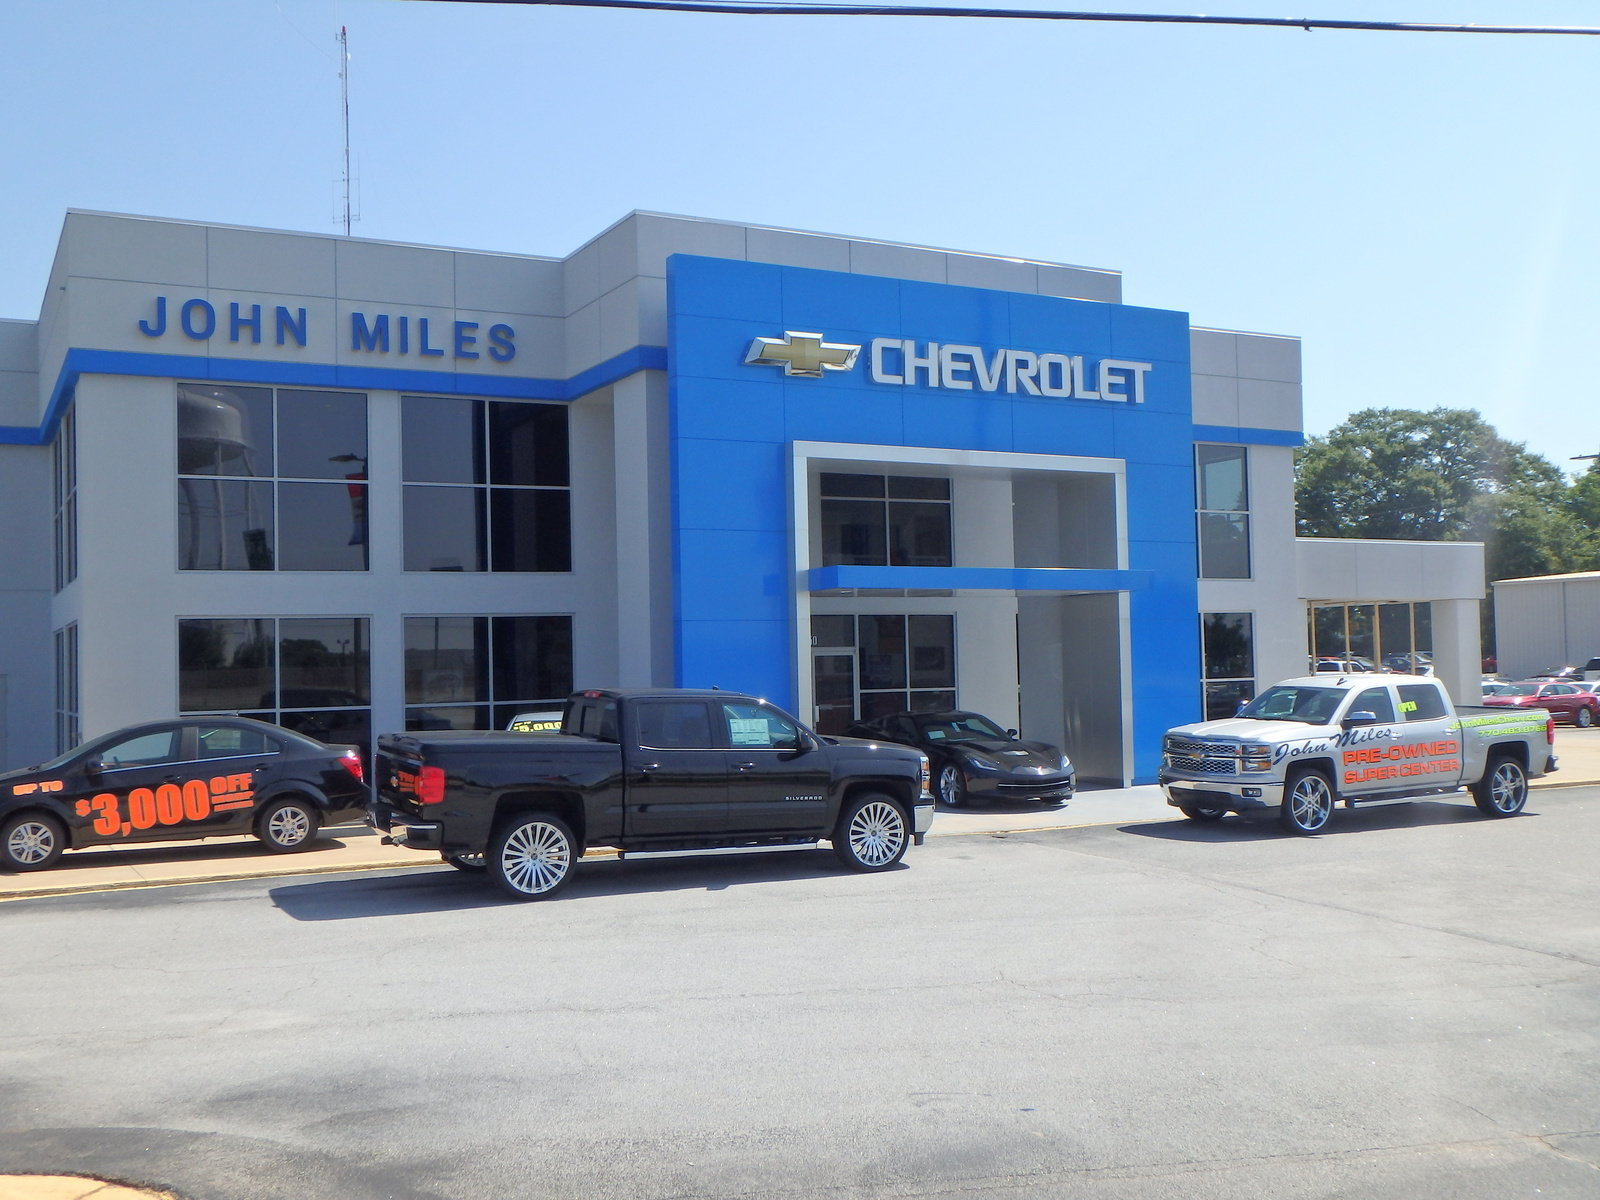 John Miles Chevrolet Buick GMC   Conyers, GA: Read Consumer Reviews, Browse  Used And New Cars For Sale